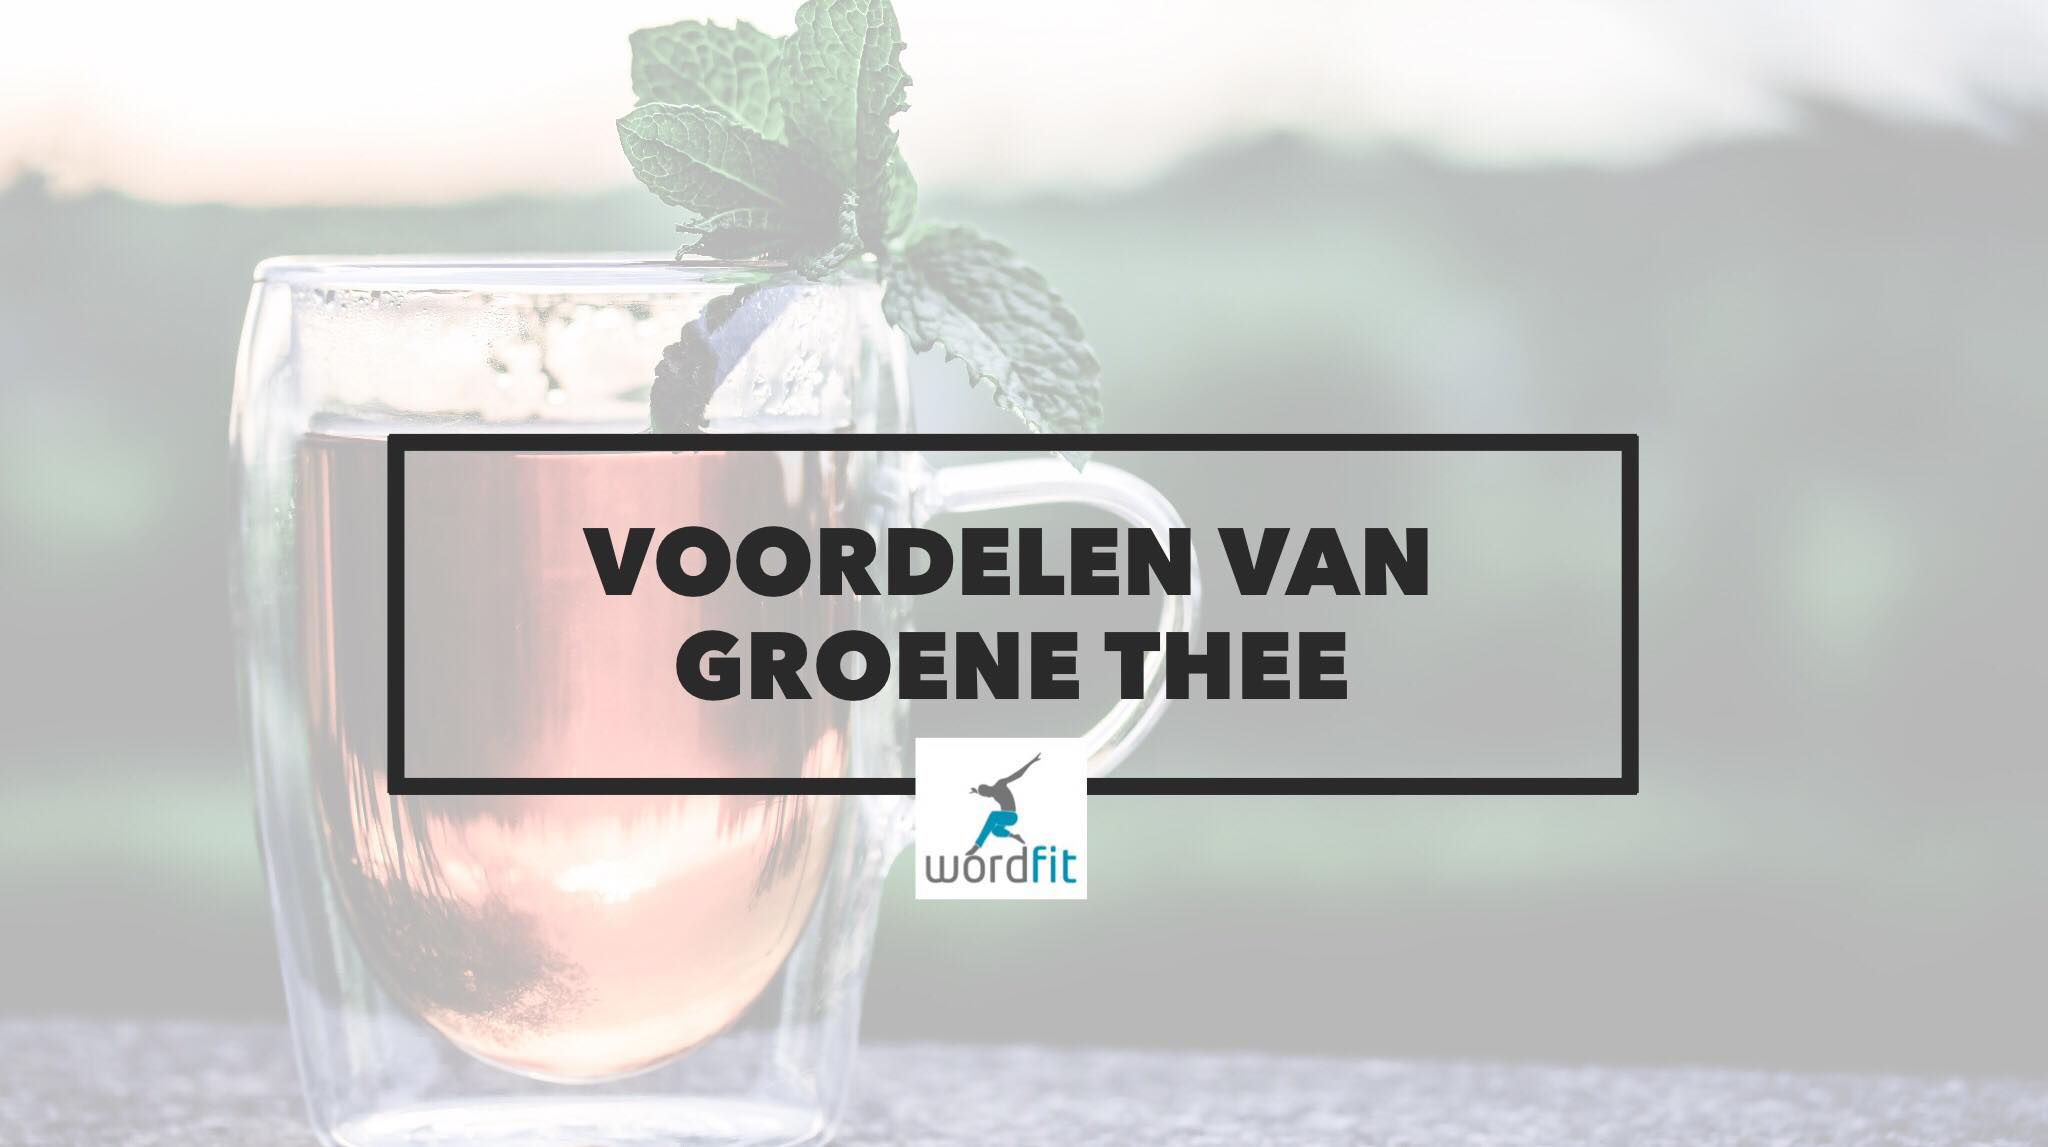 https://www.wordfit.be/sites/default/files/images/blog/image/voordelen_groene_thee.jpg